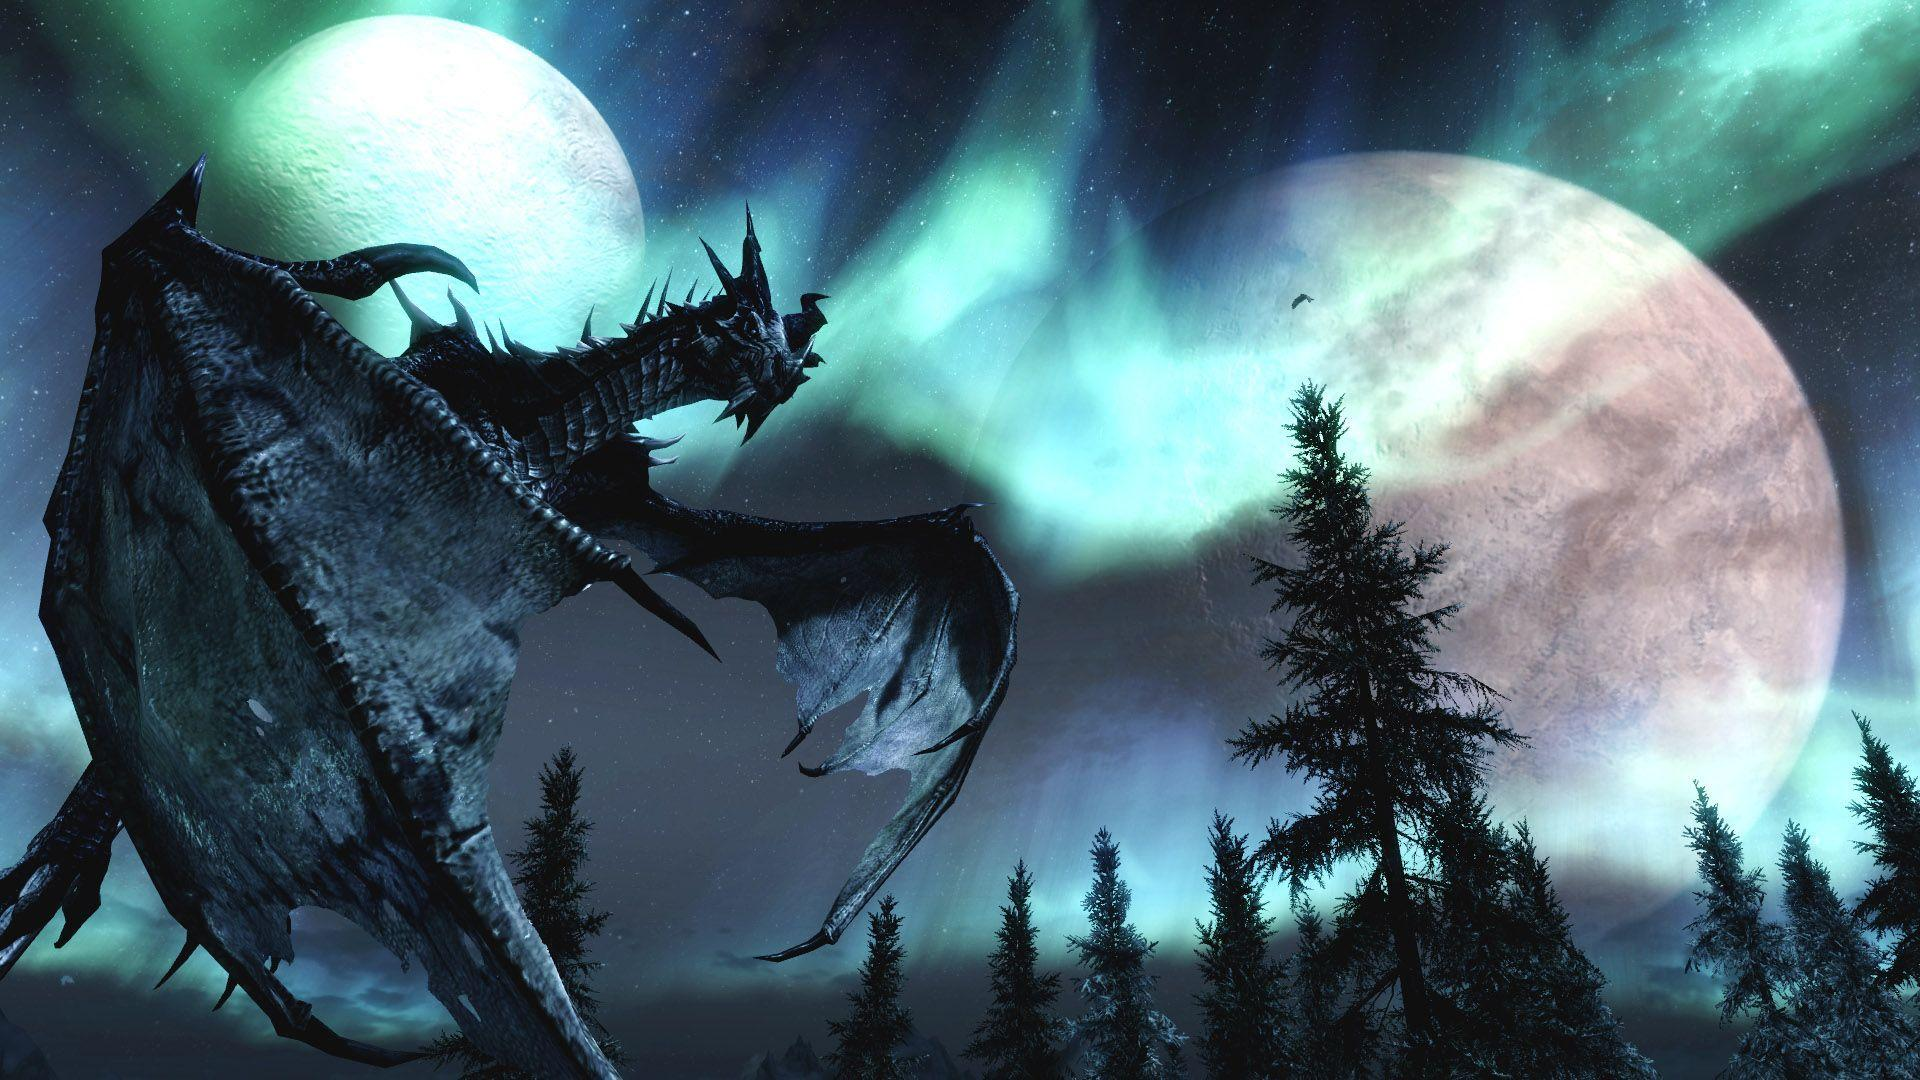 dragon wallpaper widescreen high resolution - photo #1